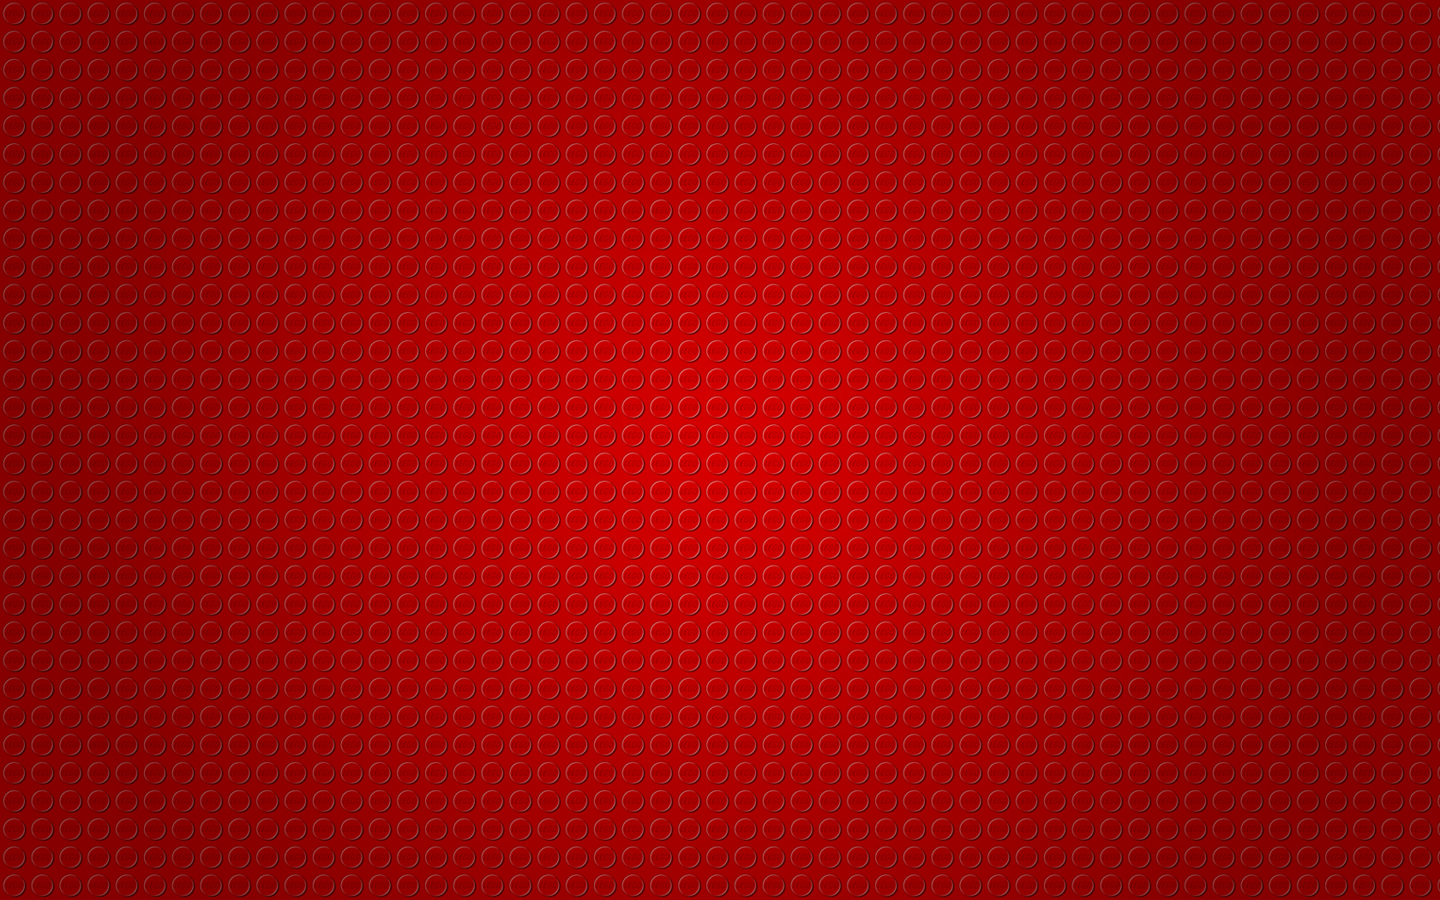 lego red 1440 900 awesome wallpapers. Black Bedroom Furniture Sets. Home Design Ideas